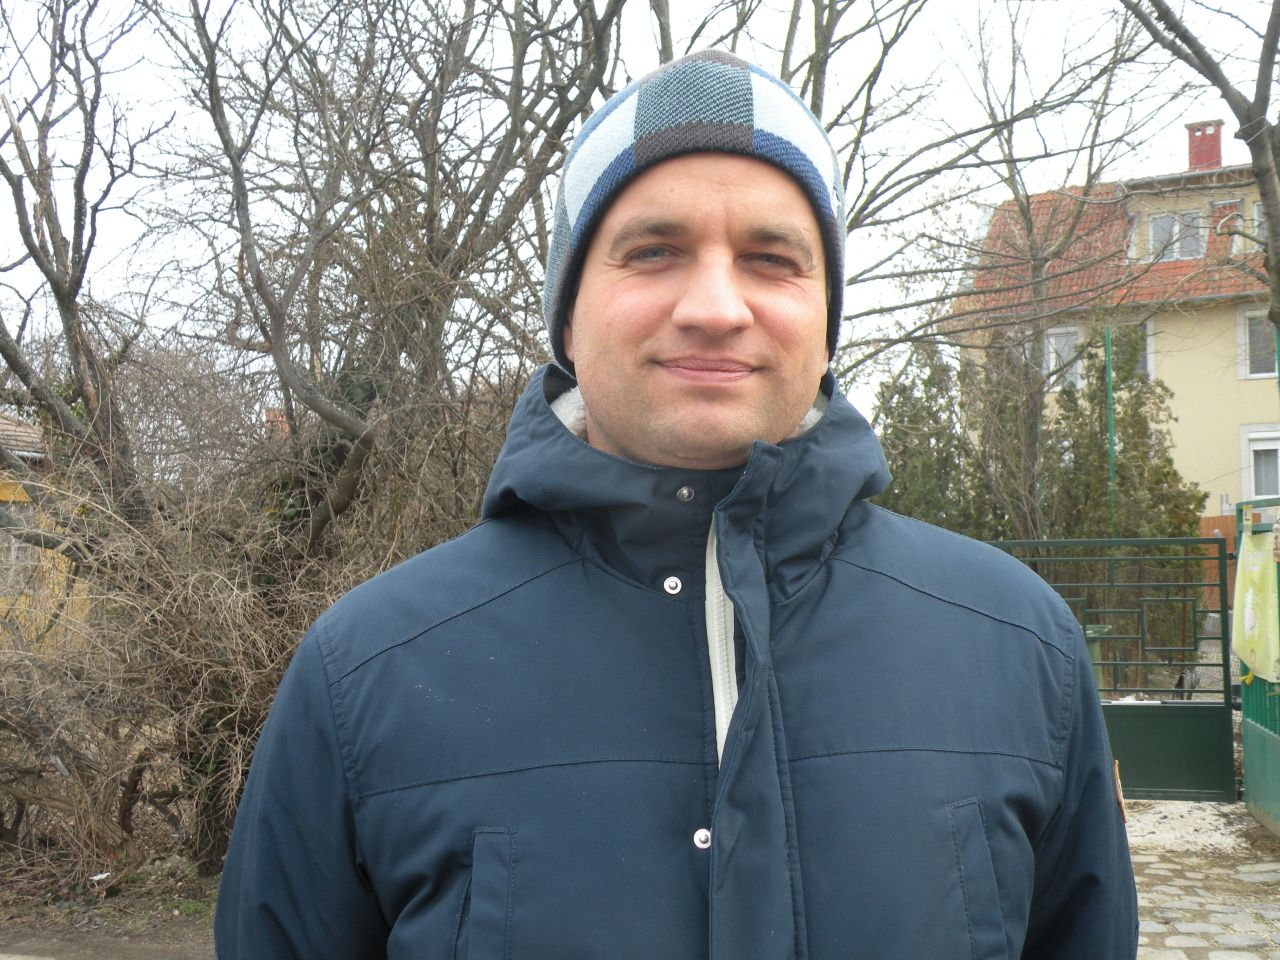 Dániel, 32, Hungary: To be a young father is a very good thing. I love to think that when I am 43 years old my son will be 20.